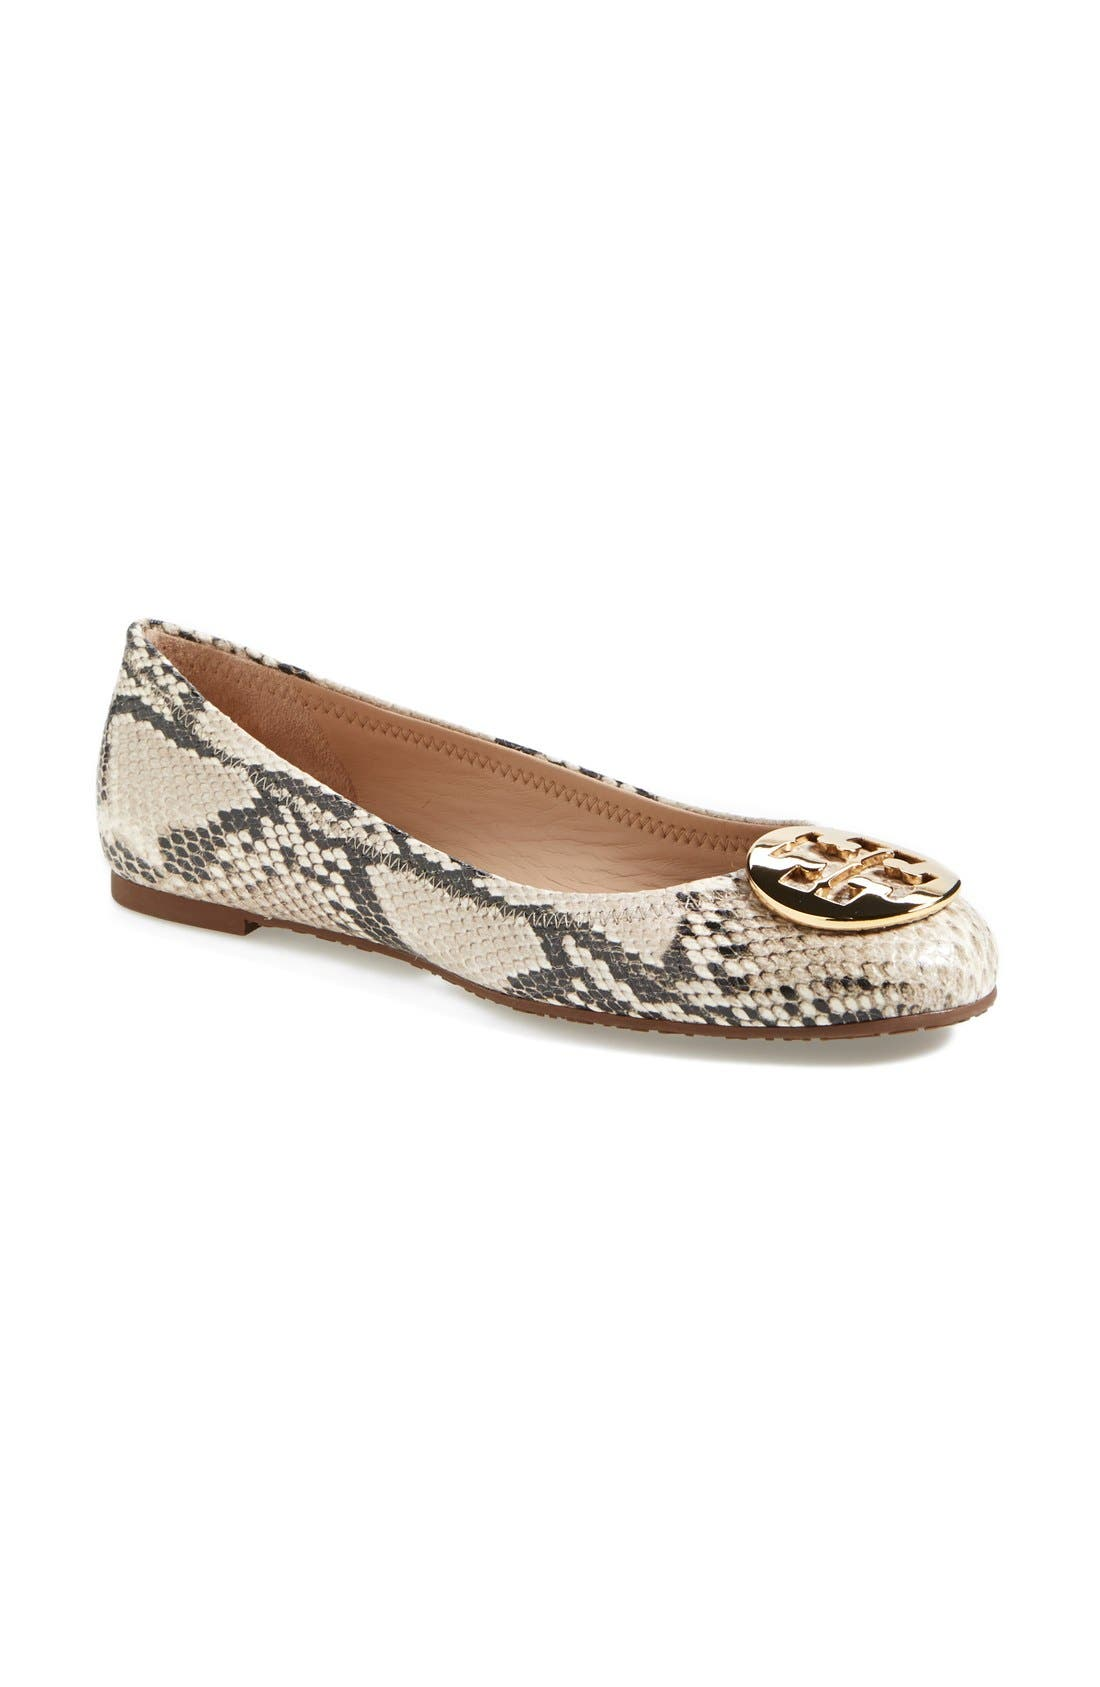 1001f8b16 123456 b7f88 68356; clearance tory burch reva snake embossed leather  ballerina flat women nordstrom 7306a 7ea3a